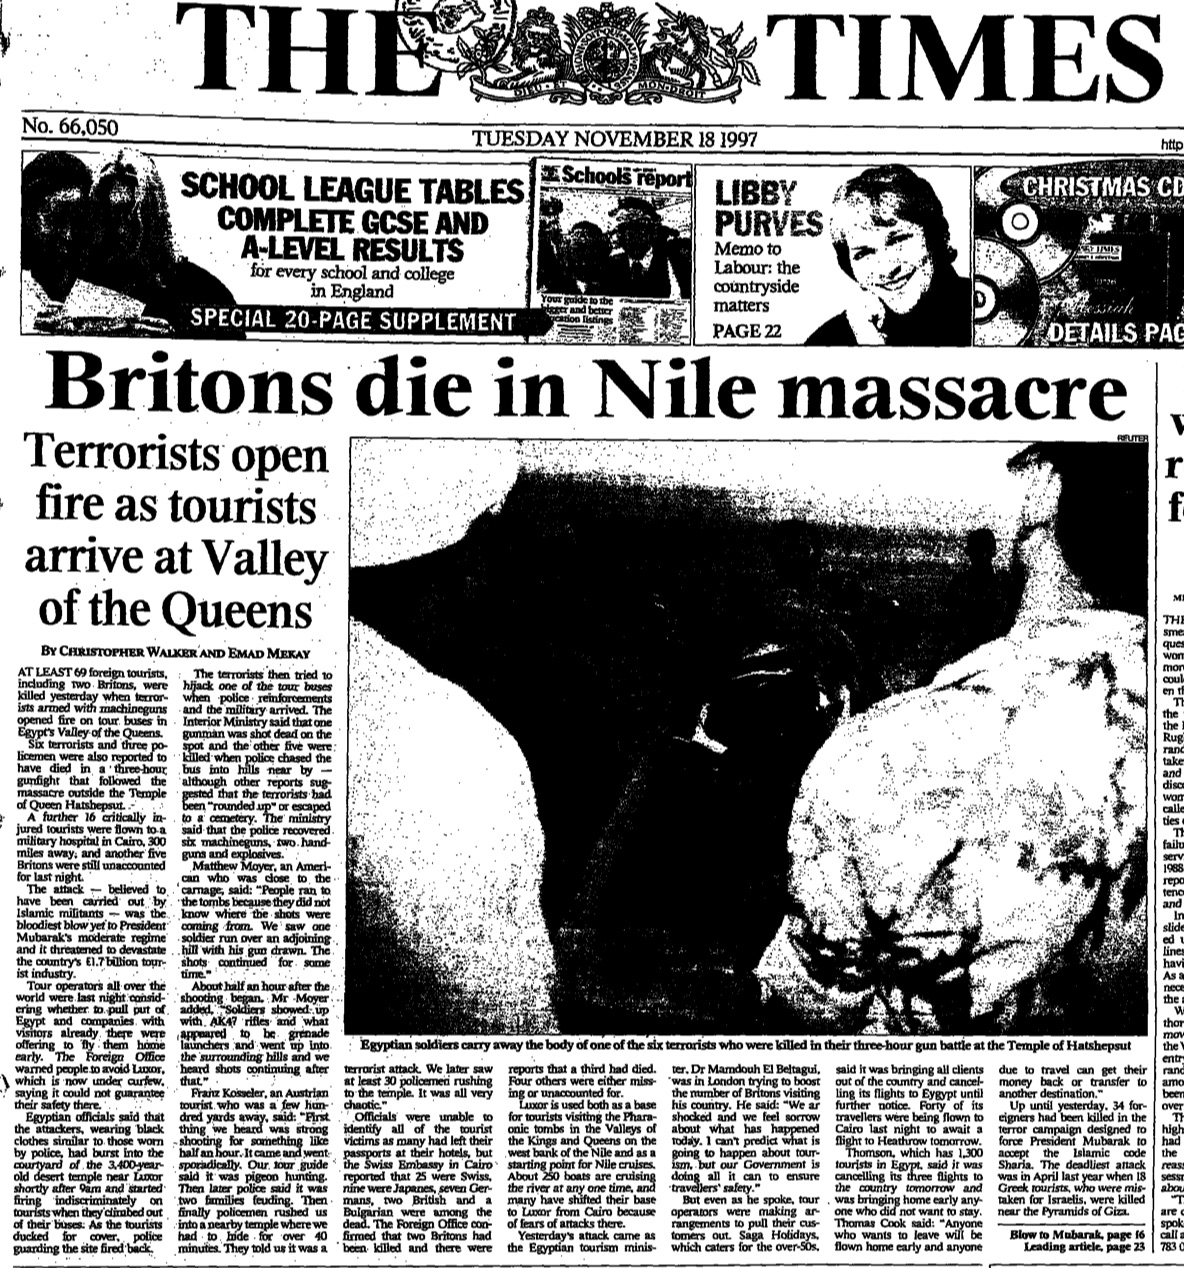 The Times, November 18, 1997